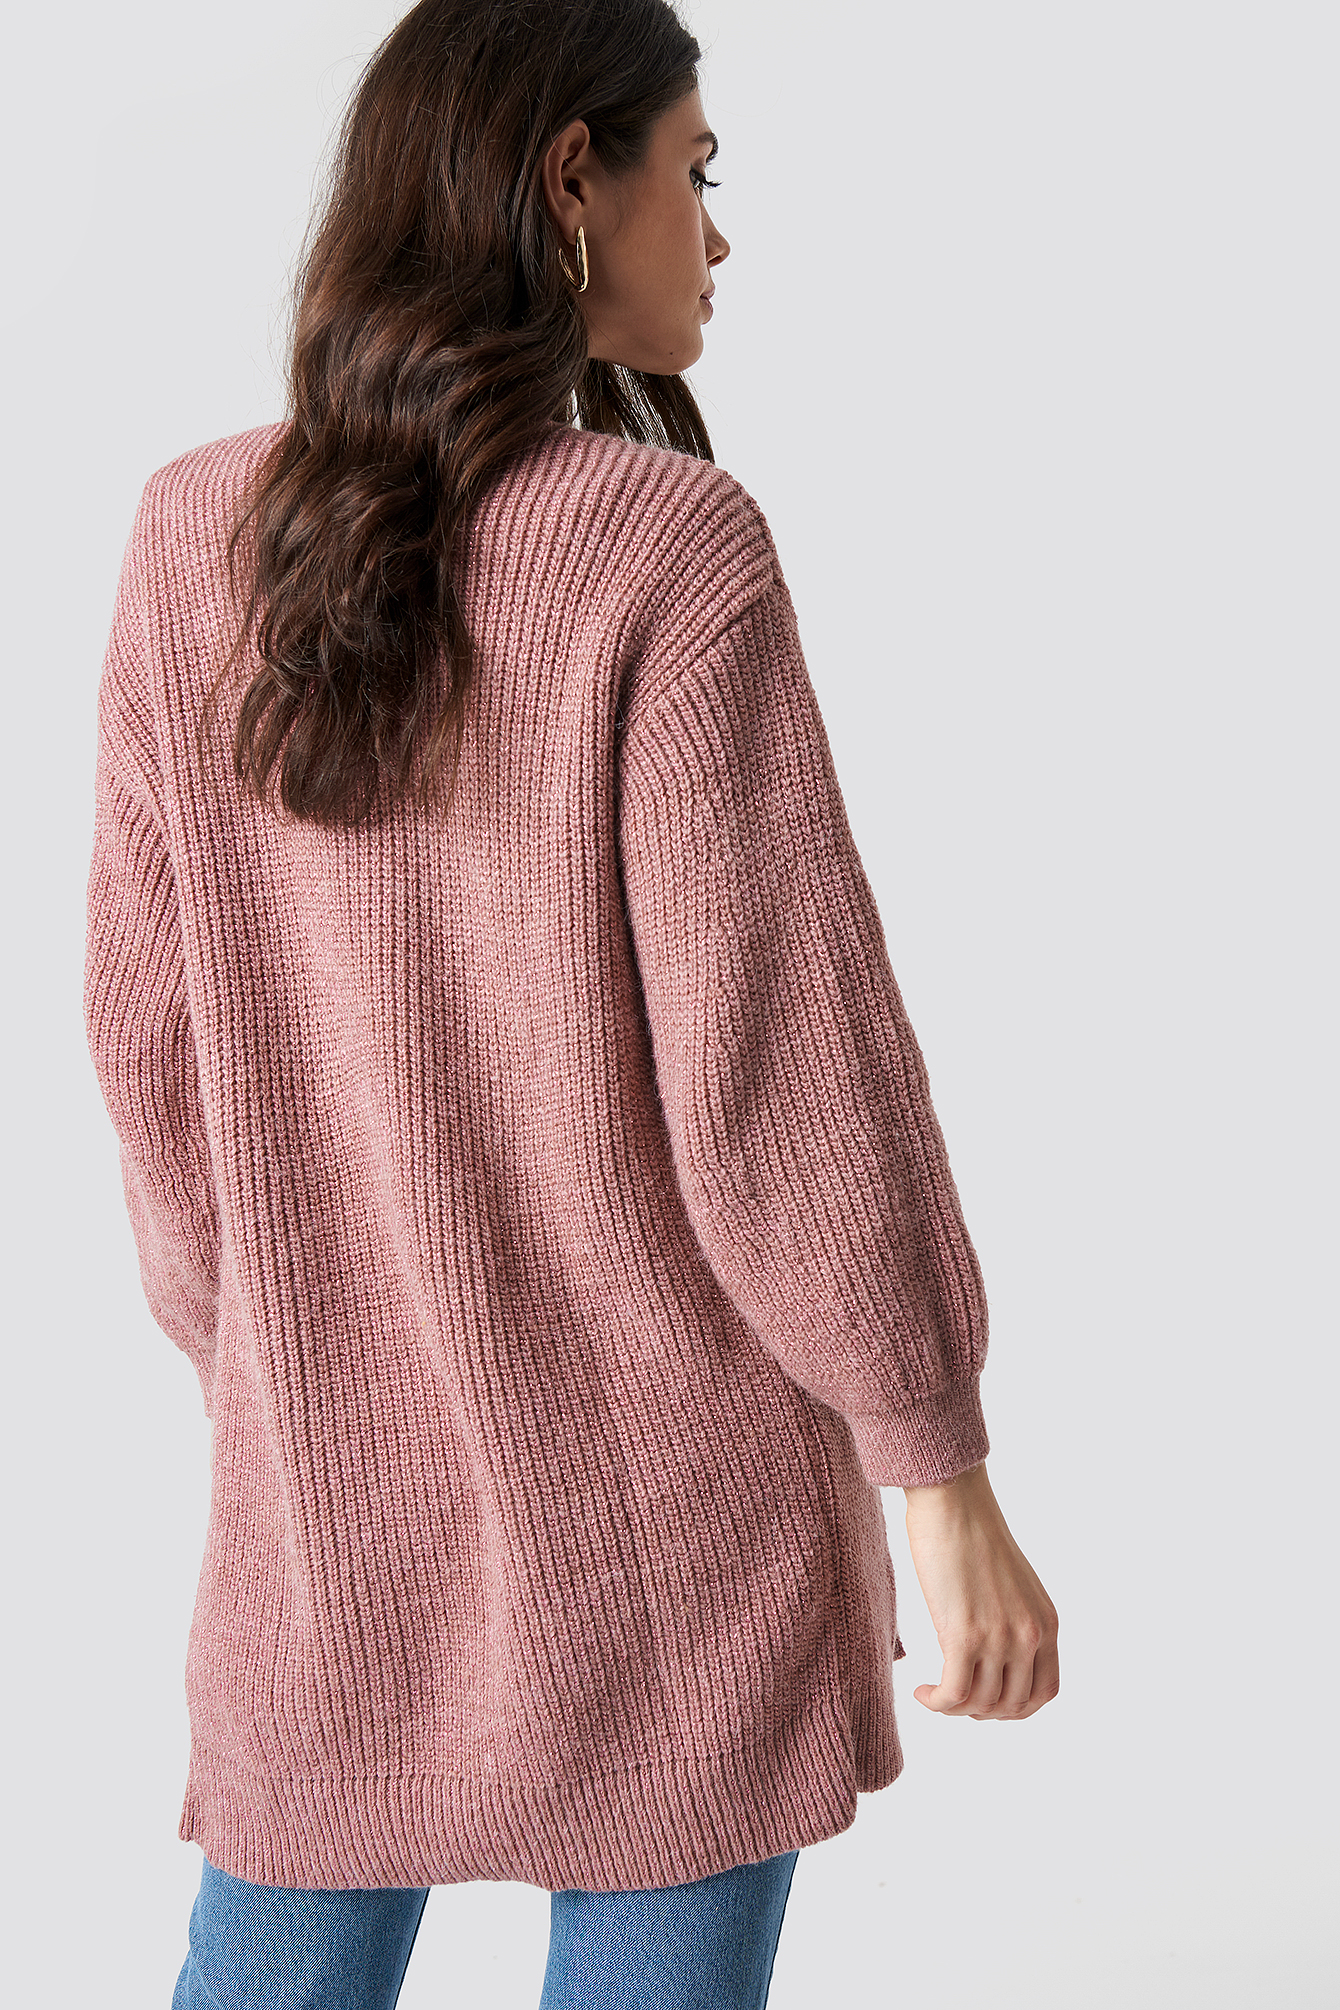 Balloon Sleeve Knitted Cardigan NA-KD.COM